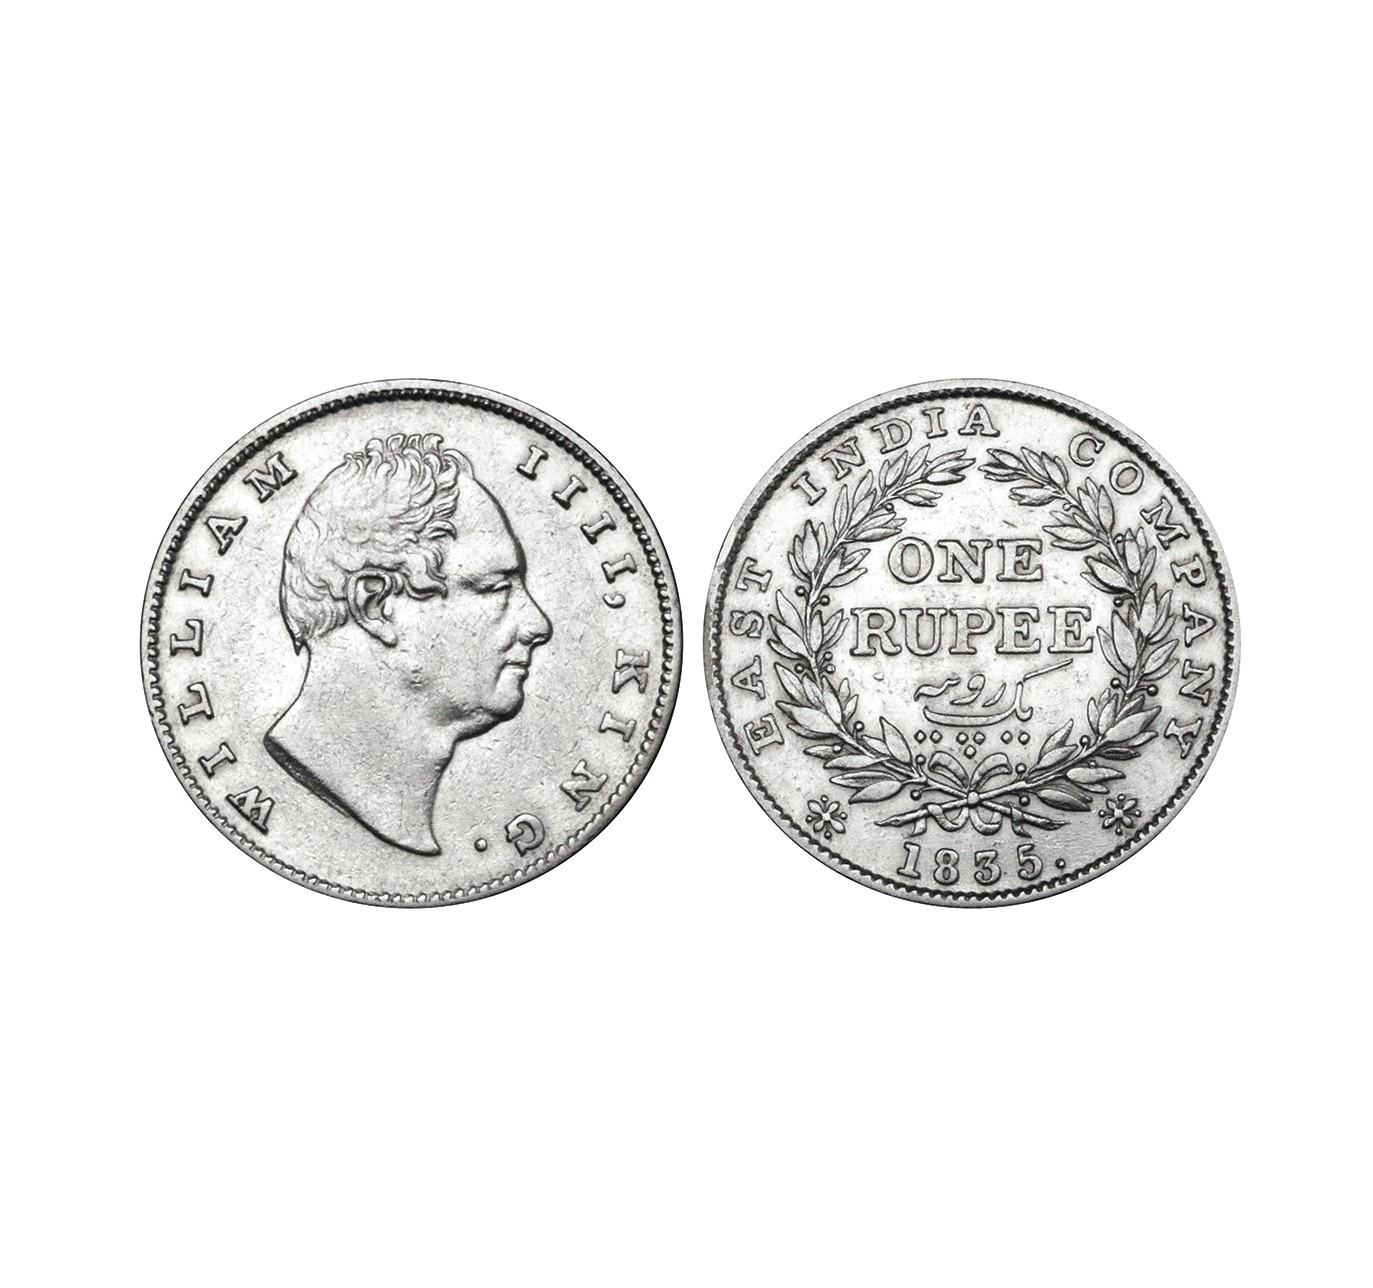 Image of King William IV 1835 Silver Rupee